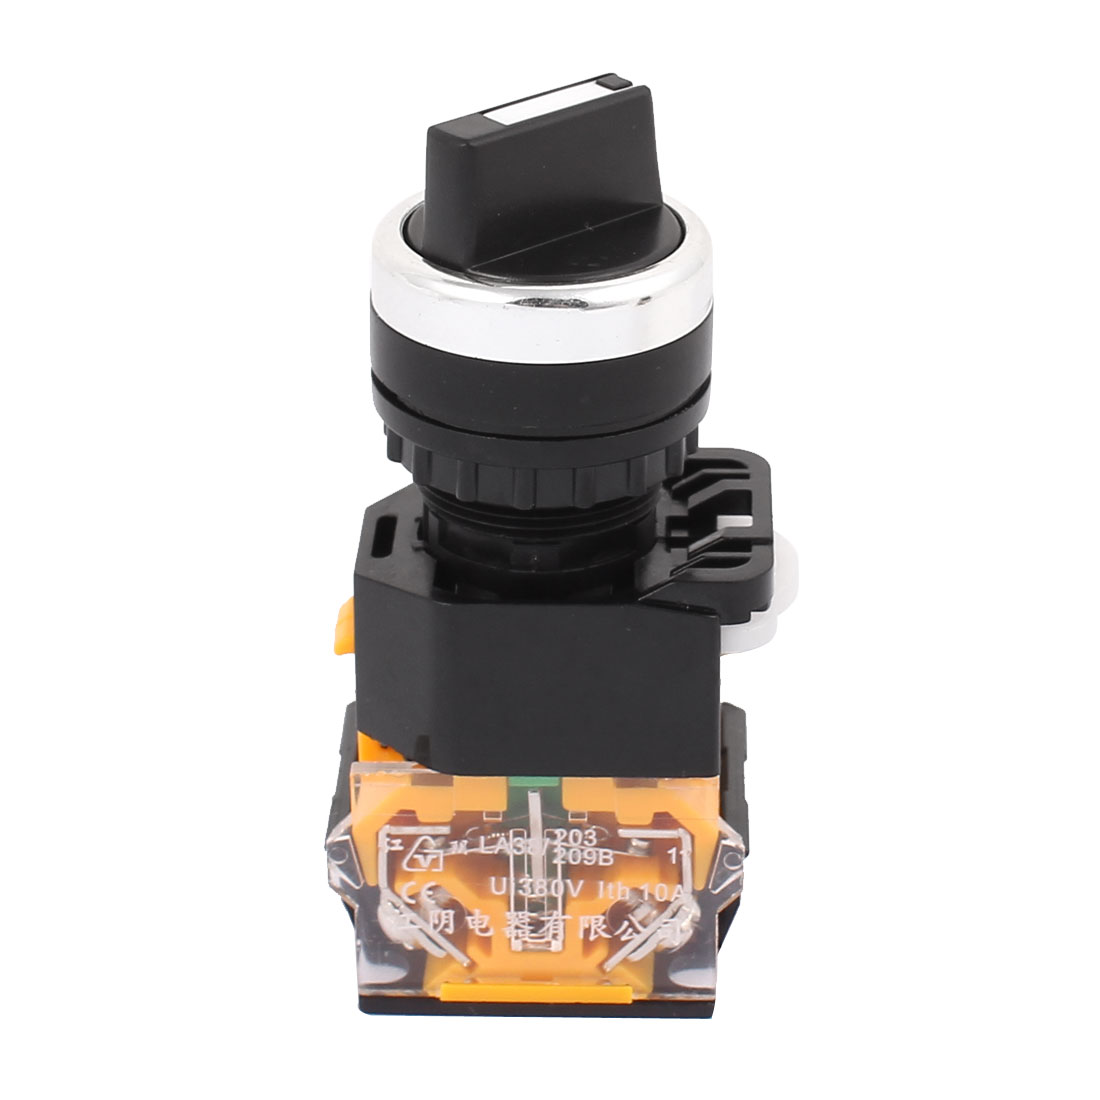 AC 380V 10A NO + NC 3 Position Rotary Selector Rotary Switch